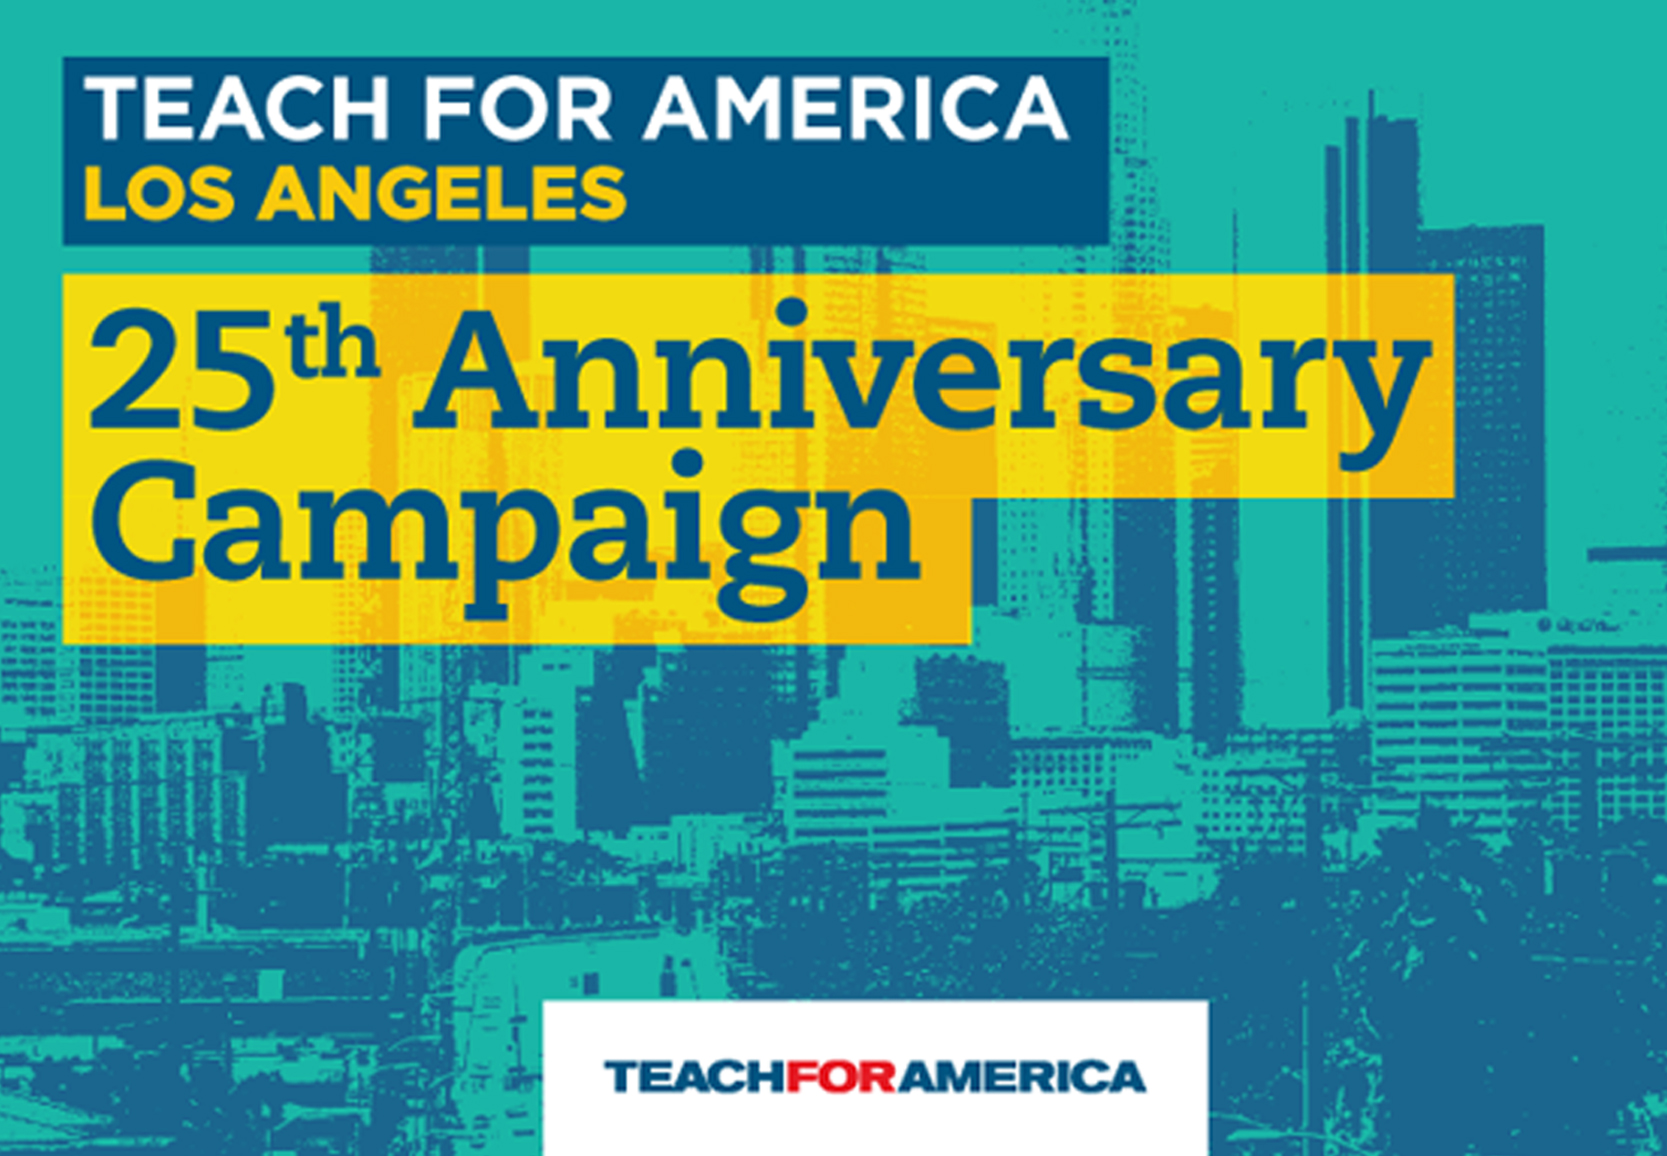 teach-for-america-campaign-featured